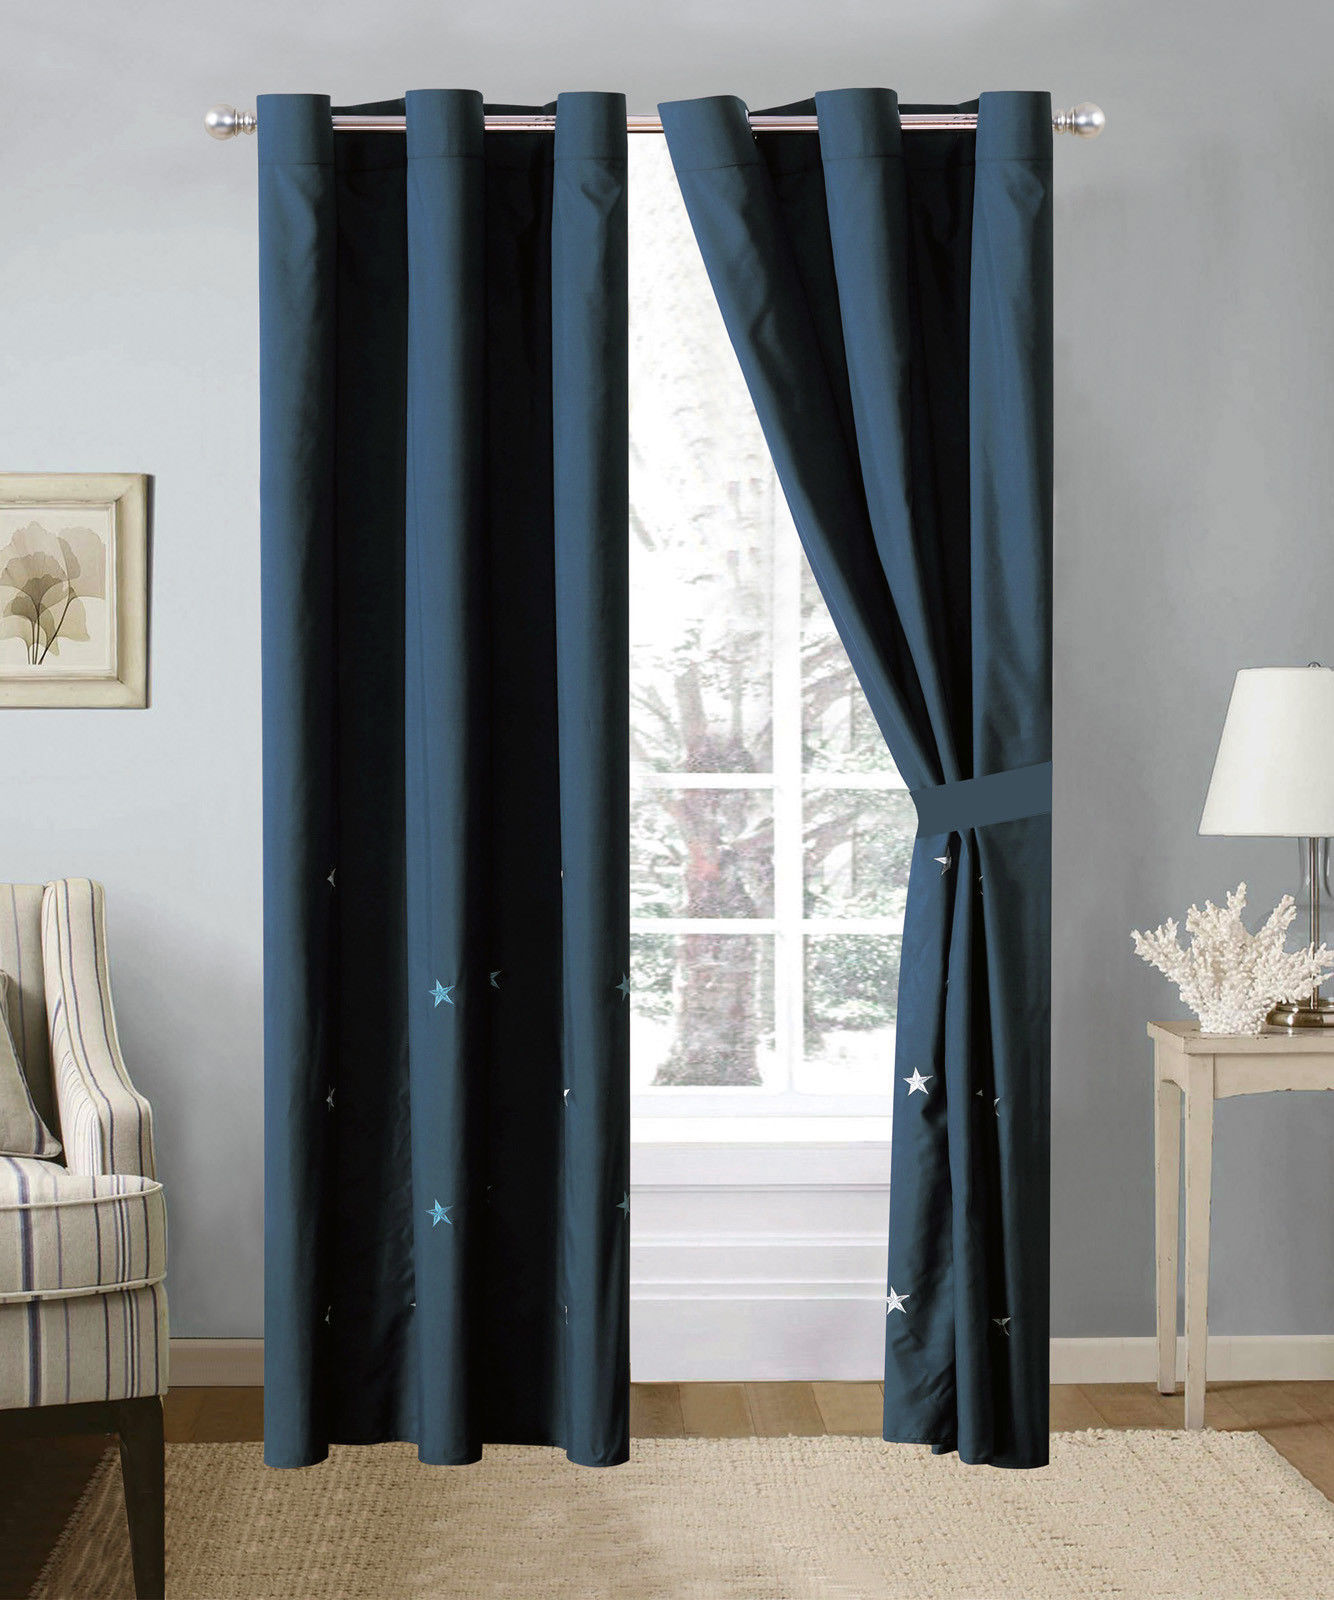 Primary image for 4P Western Star Embroidery Curtain Set Blue Navy Metal Grommet Sheer Liner Drape